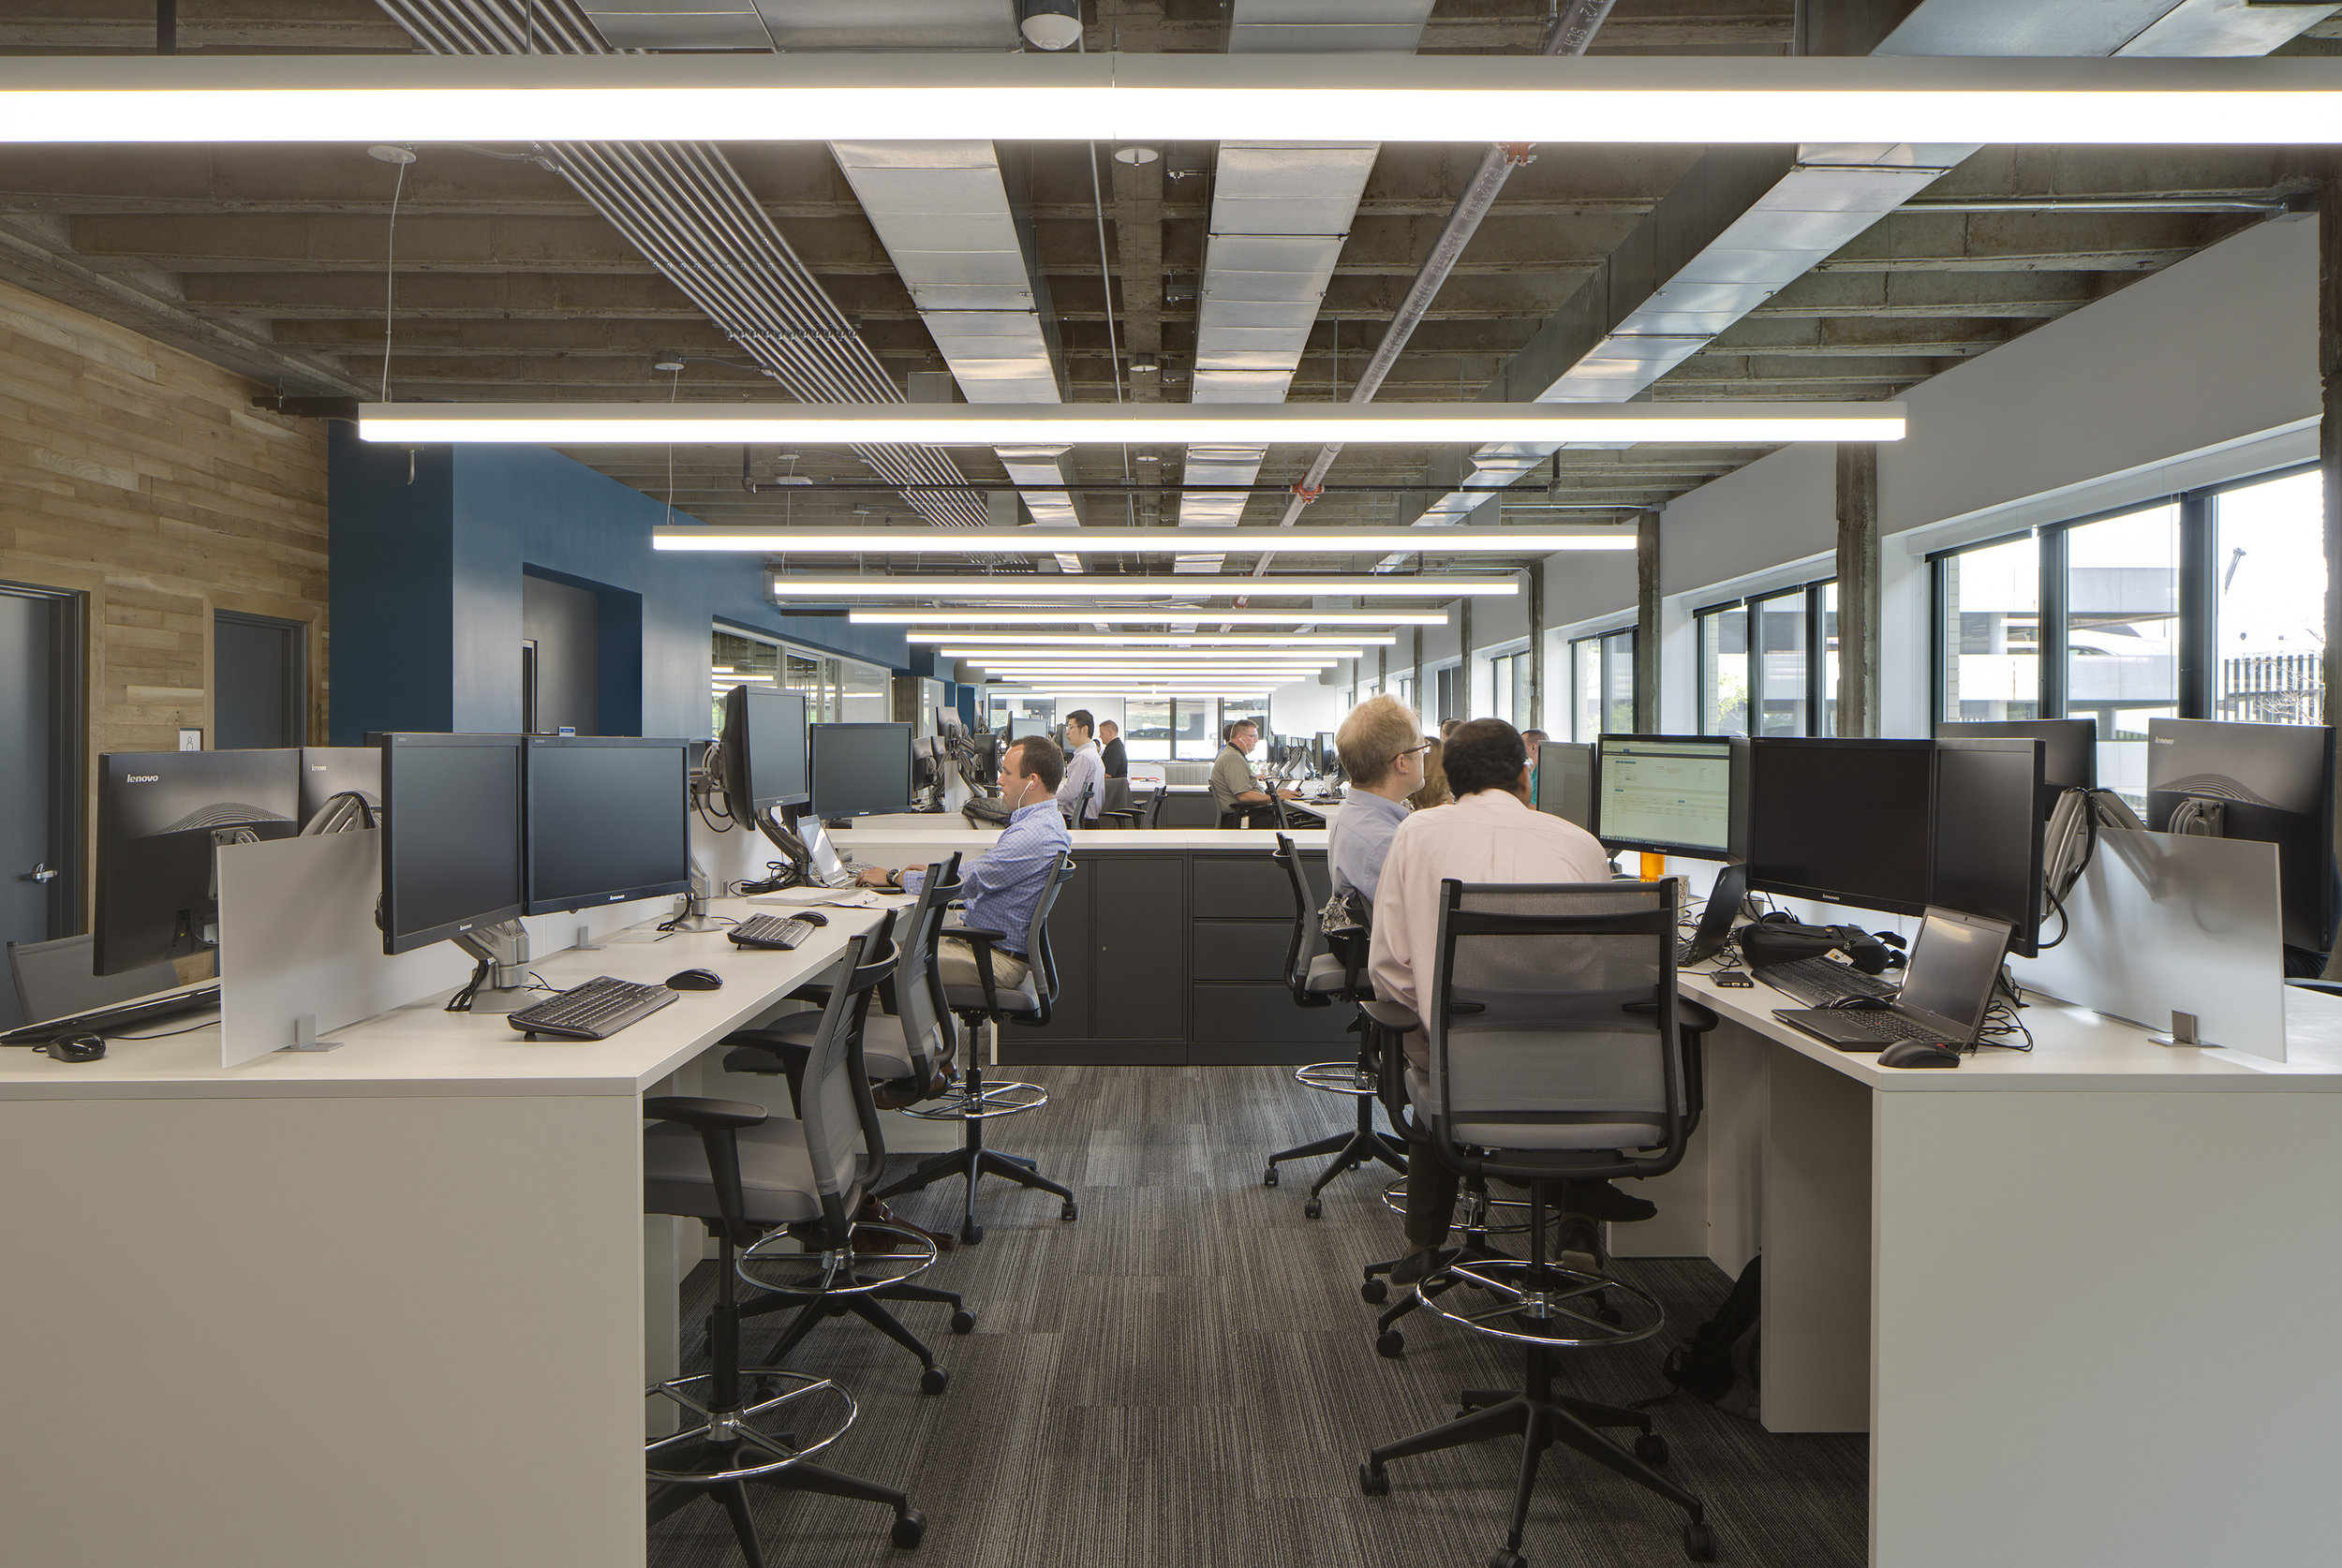 Open office floor plans can break down the barriers of workplace hierarchy.